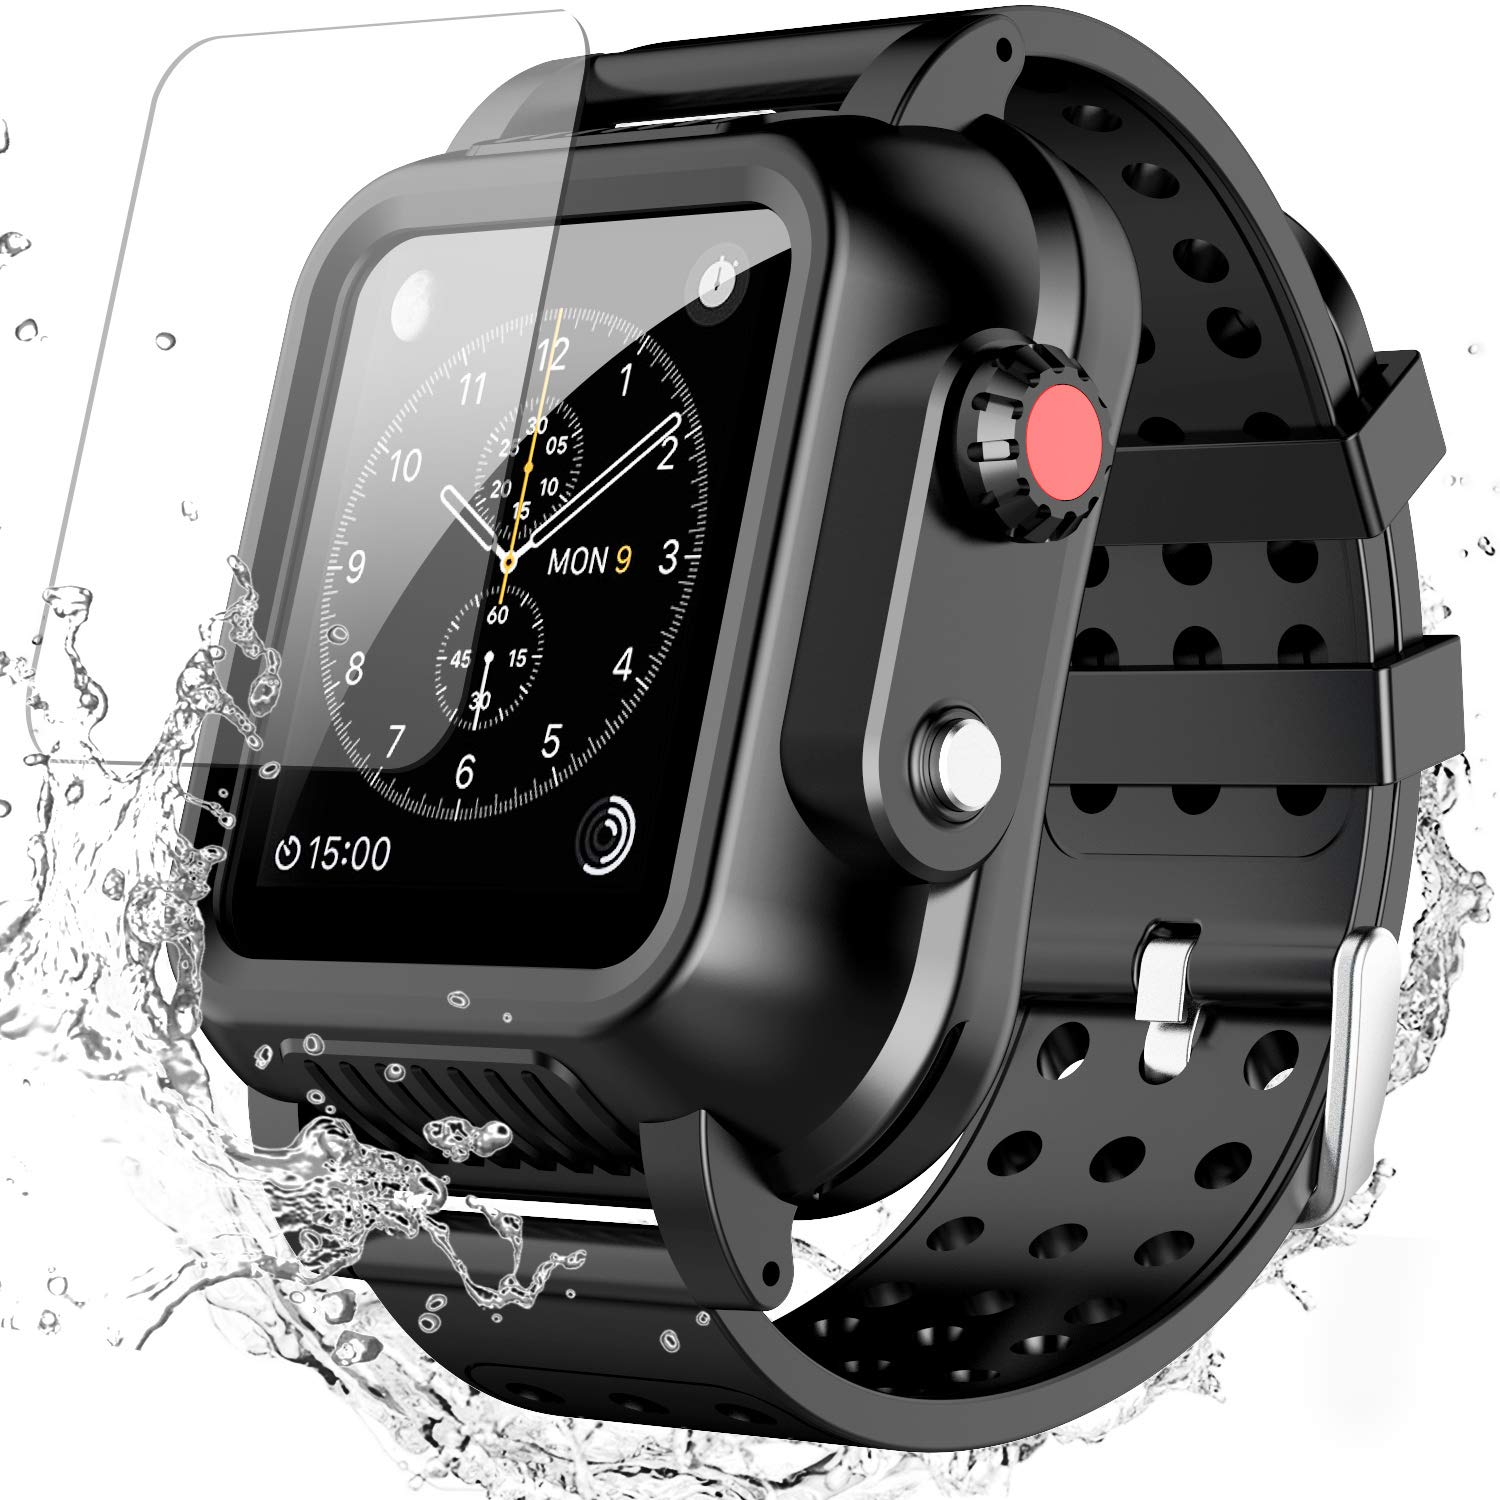 Waterproof Case for Apple Watch Series 3 42mm with Premium Soft Silicone Band, SPIDERCASE Built-in Screen Protector Full Body Rugged Armor Case, Anti-Scratch, Shockproof, for Apple Watch Series 3 42mm by SPIDERCASE